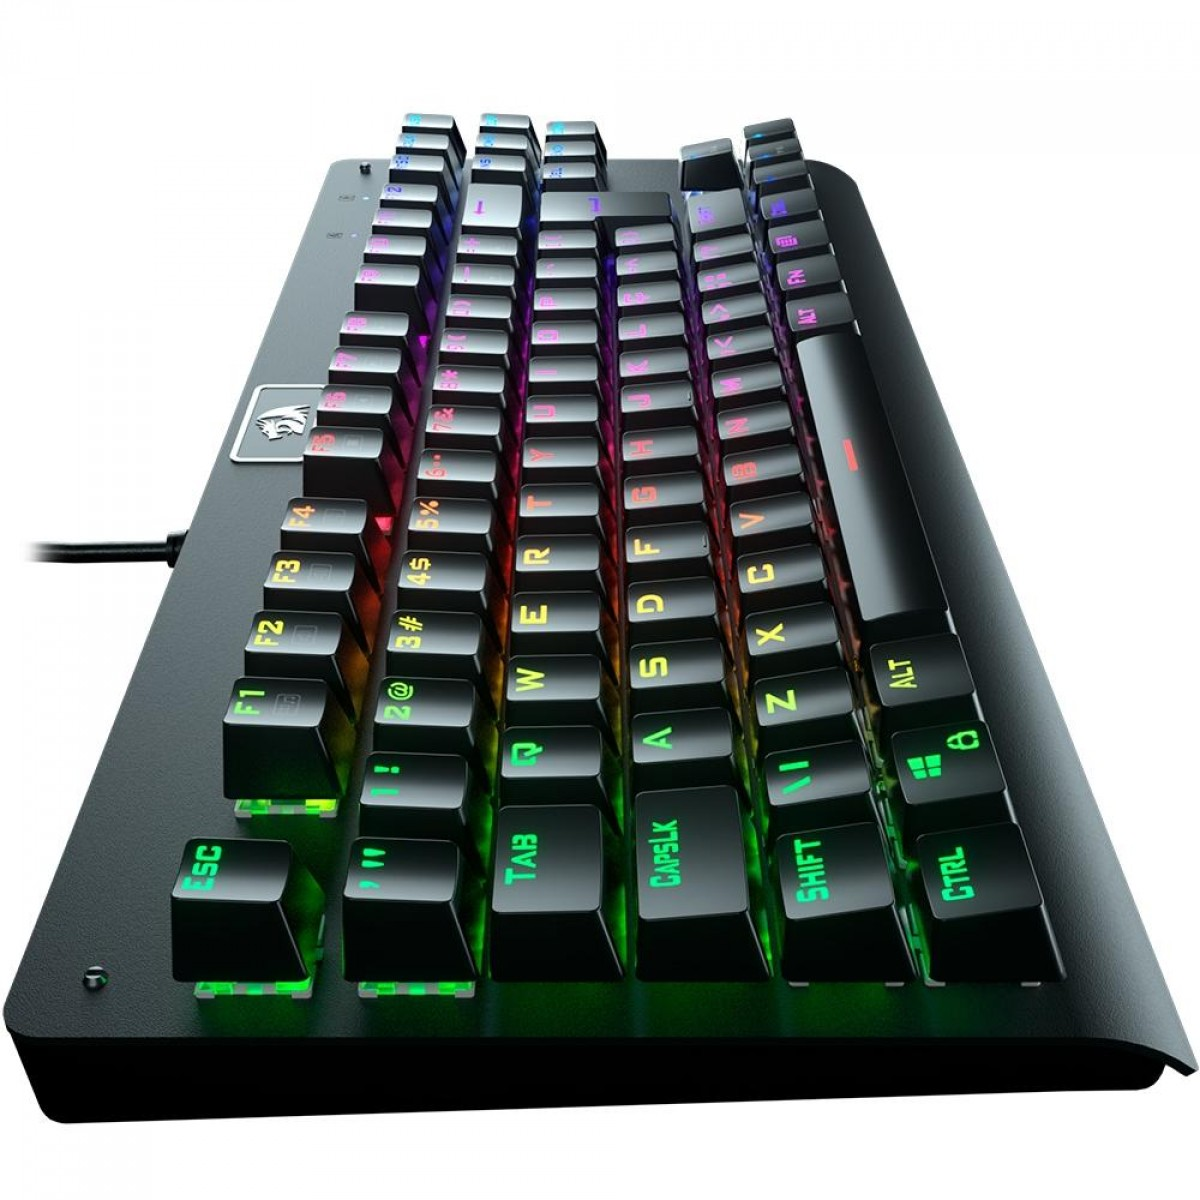 Teclado Mecânico Gamer Redragon Dark Avenger RGB, Switch Outemu Red, ABNT2, Black, K568RGB-2